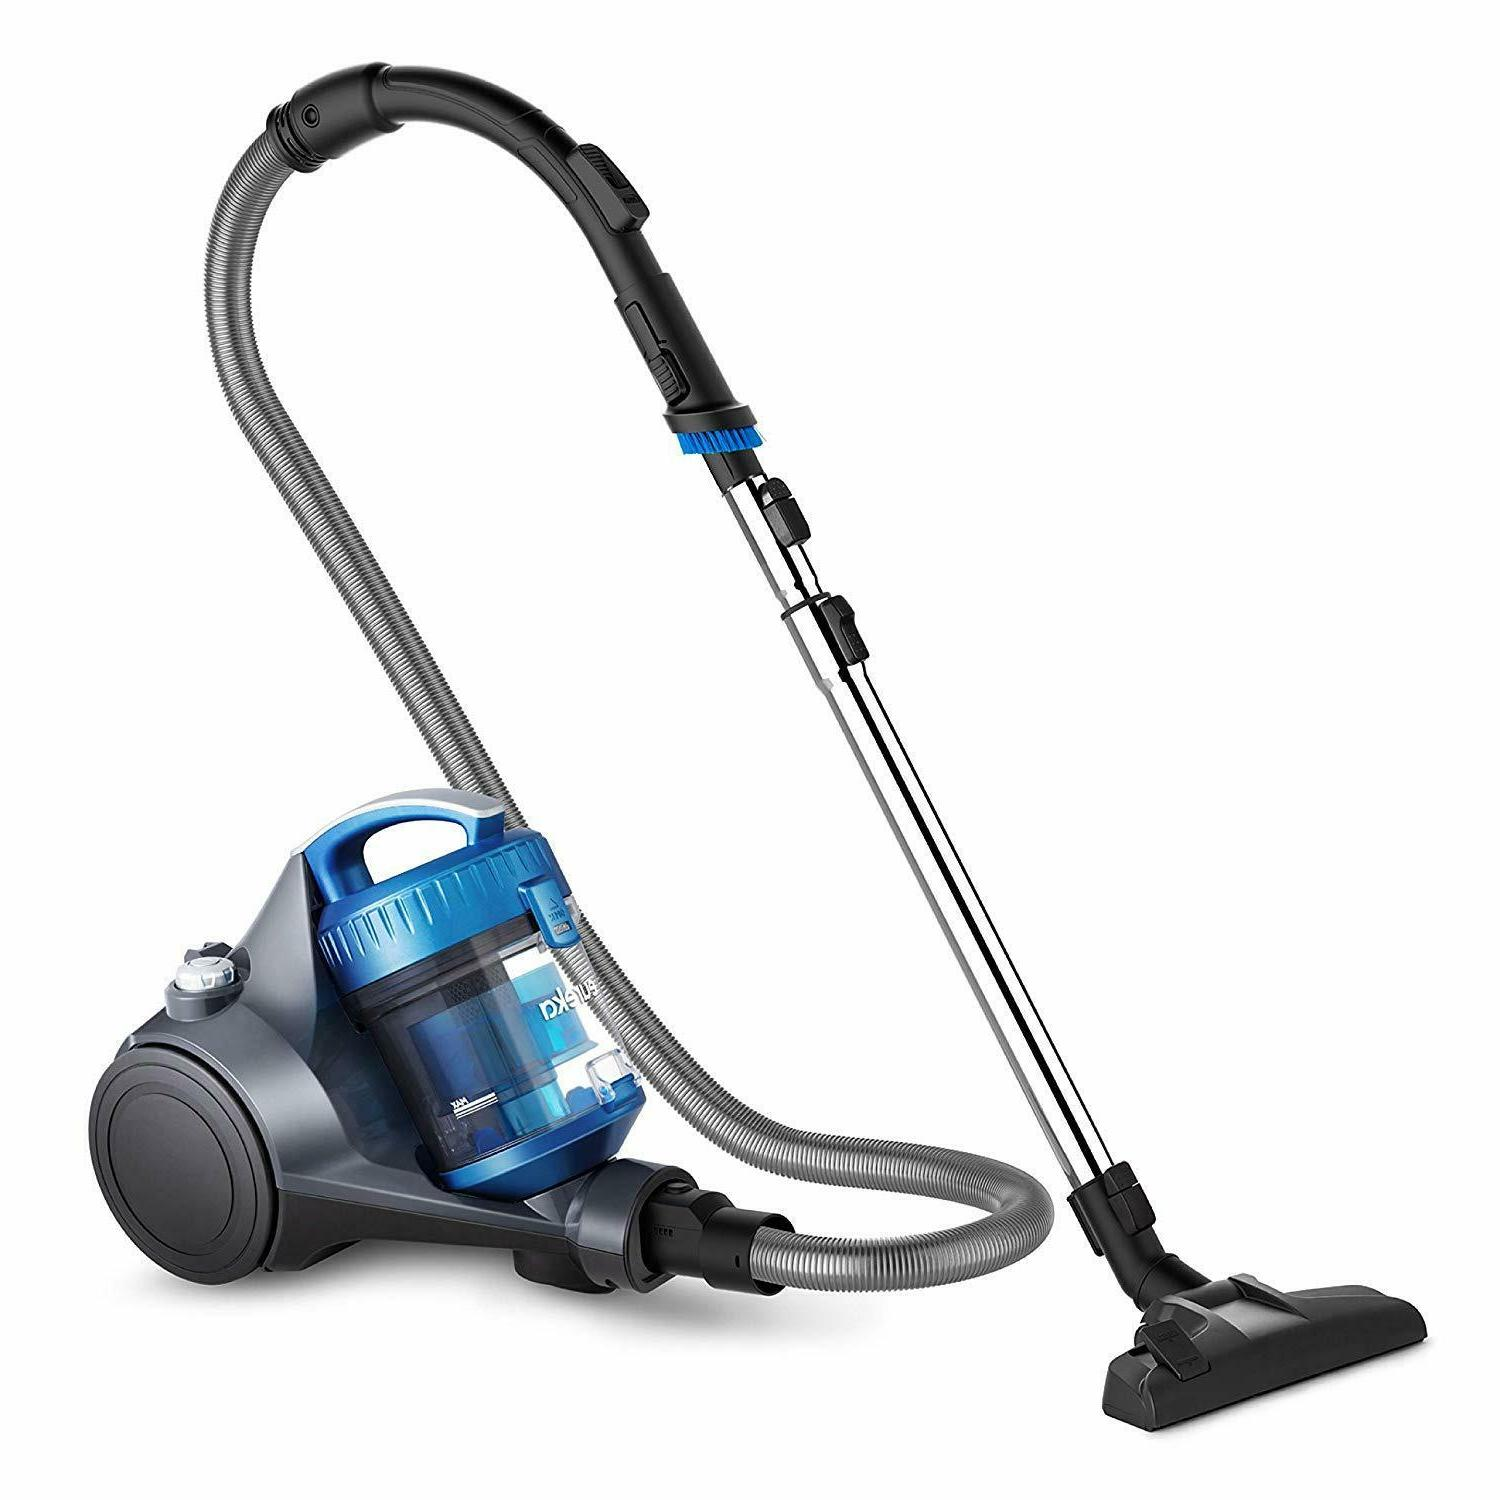 nen110a whirlwind bagless canister vacuum cleaner free